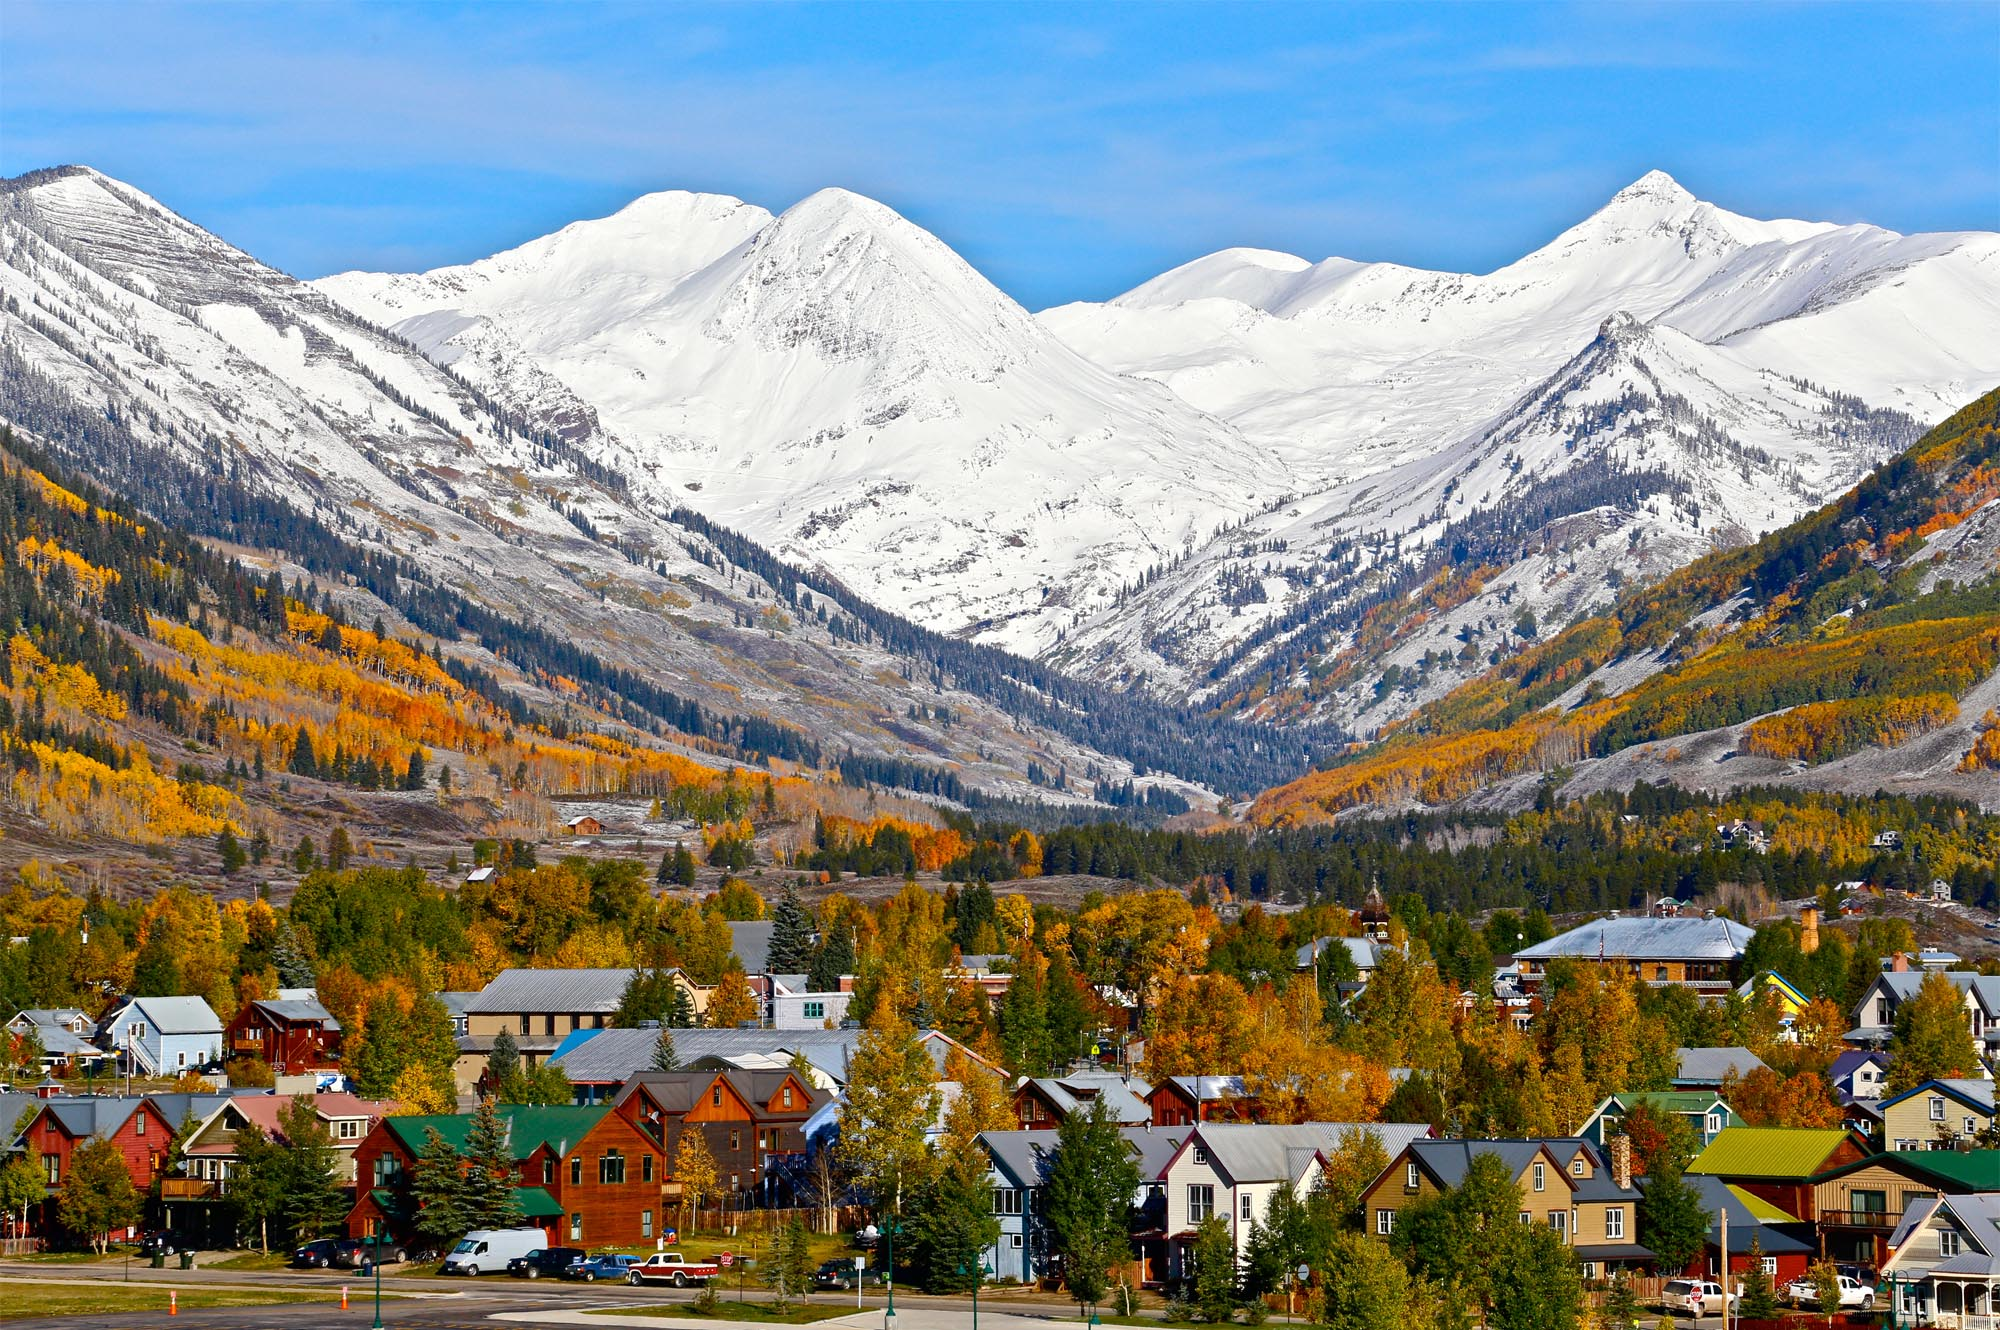 wordless wednesday paradise divide at crested butte colorado ski